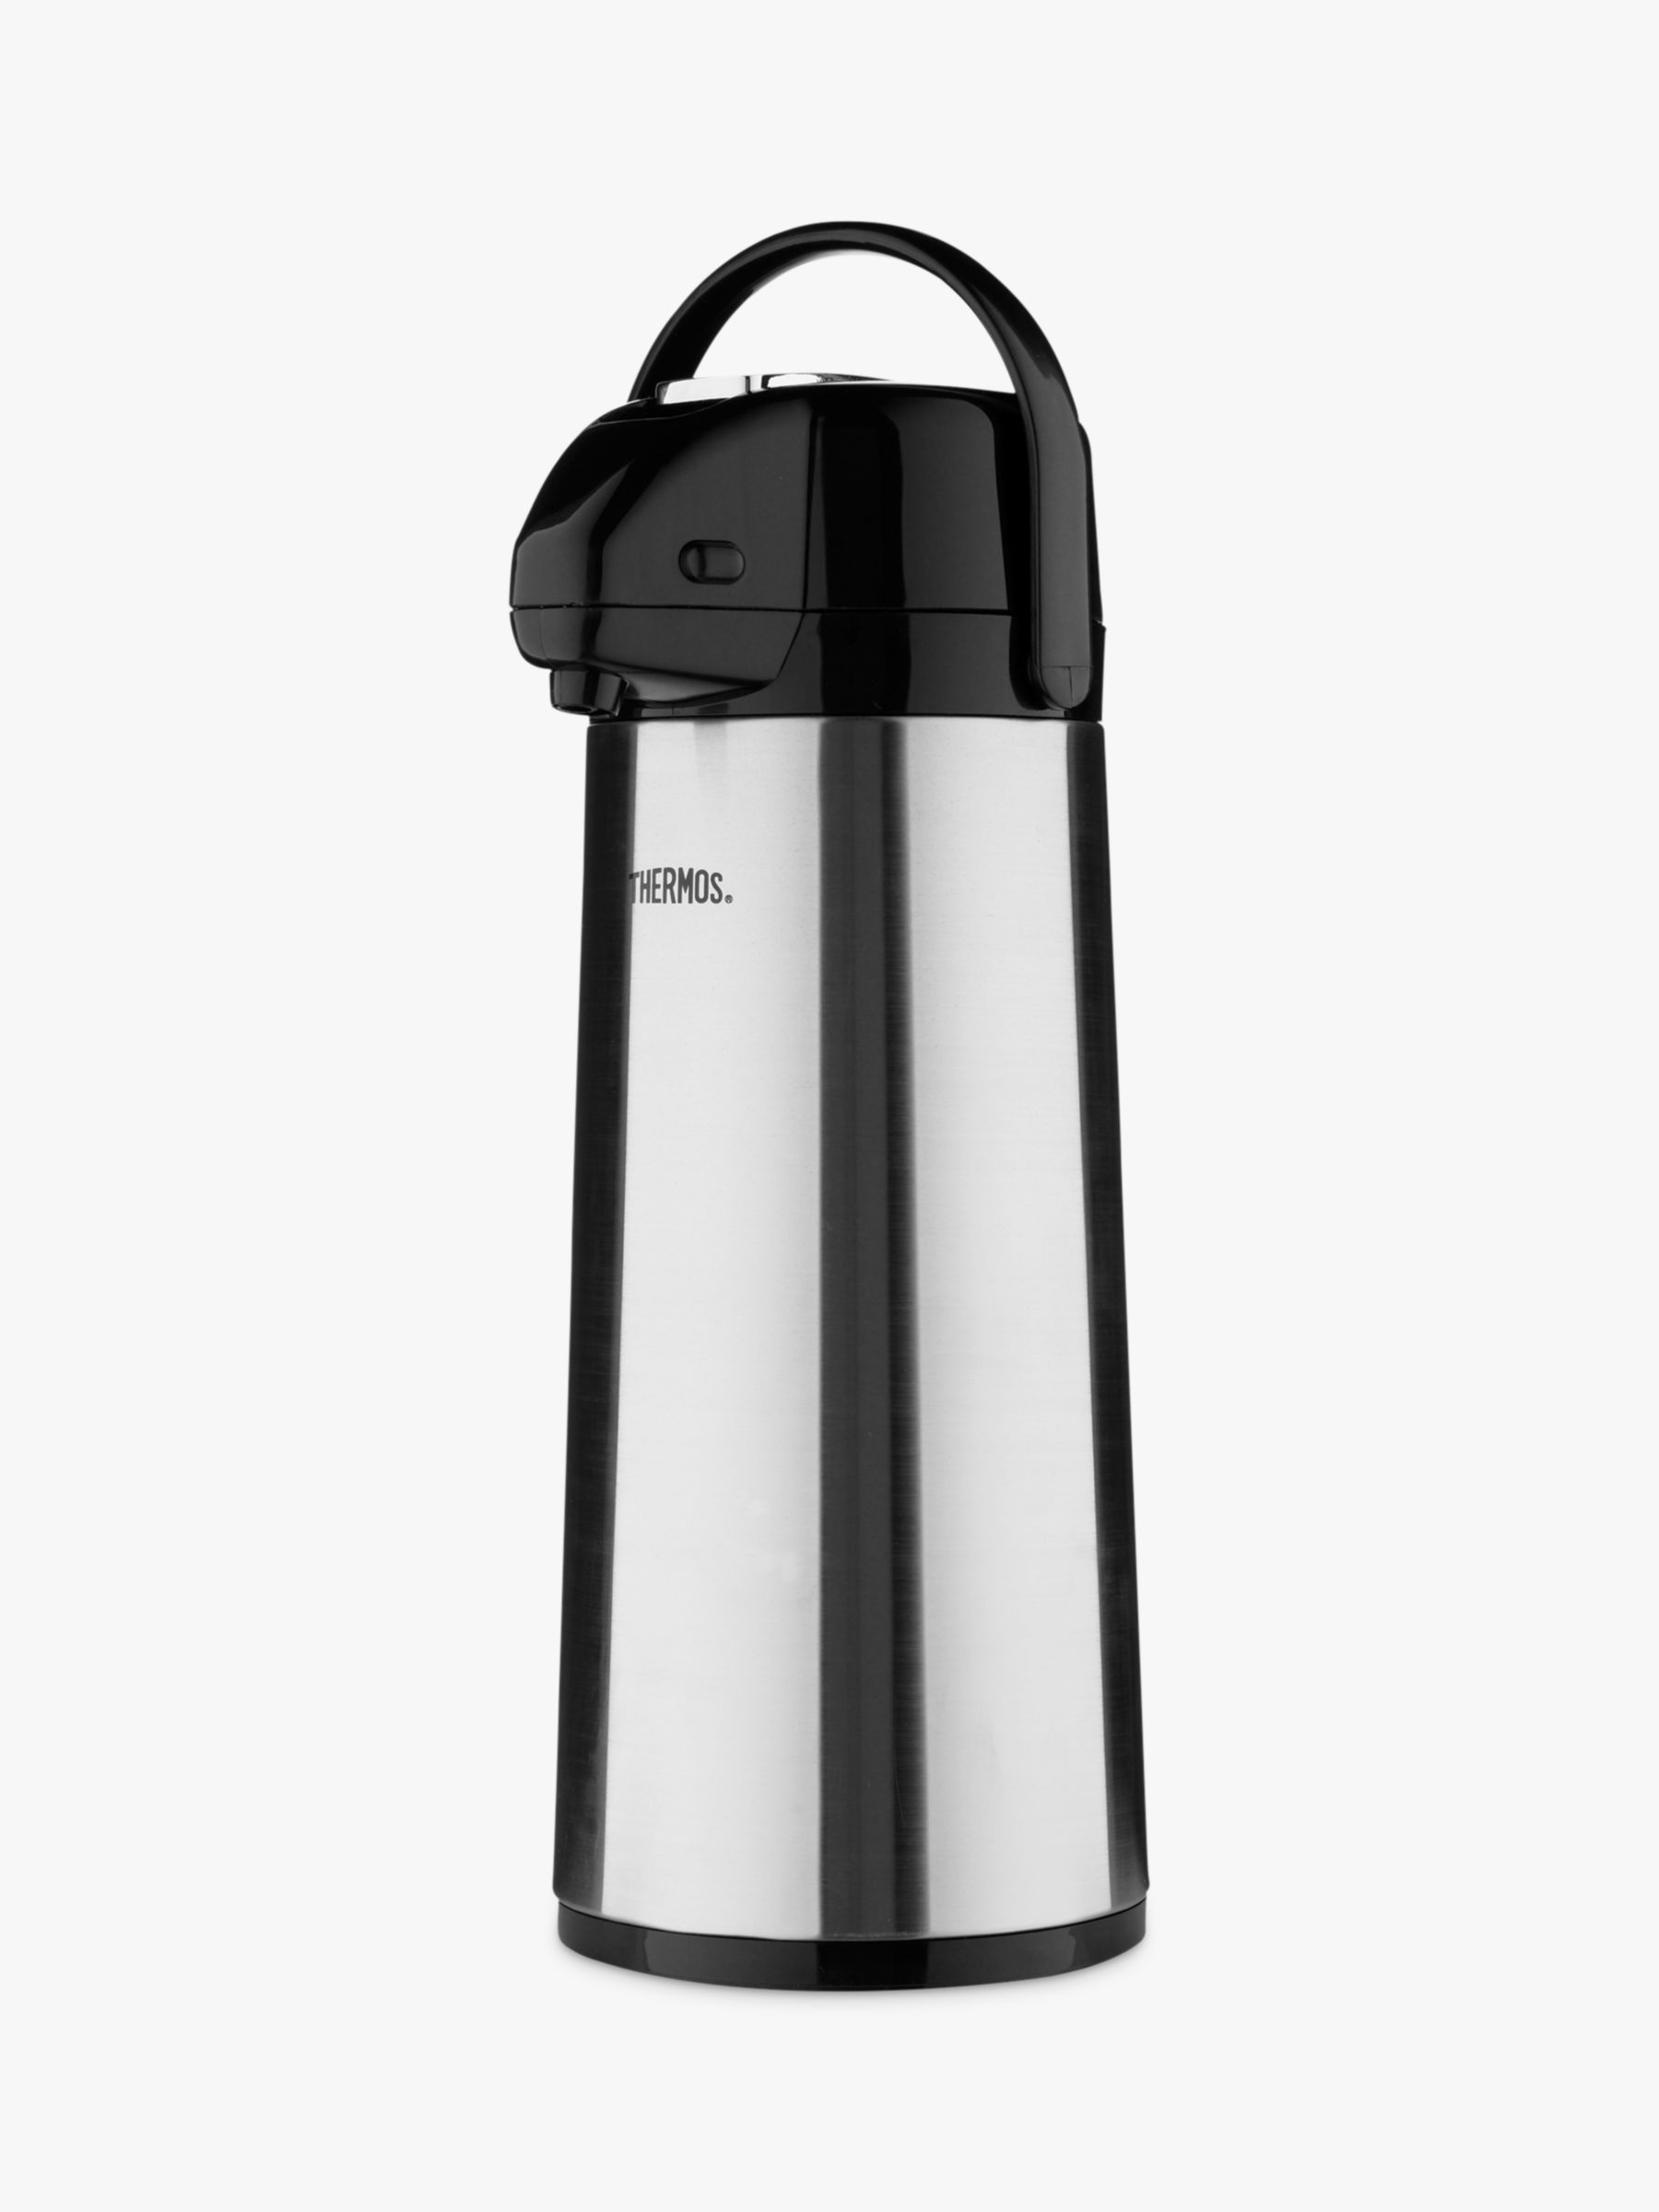 Thermos Thermos Lever Action Pump Pot, 2.5L, Stainless Steel